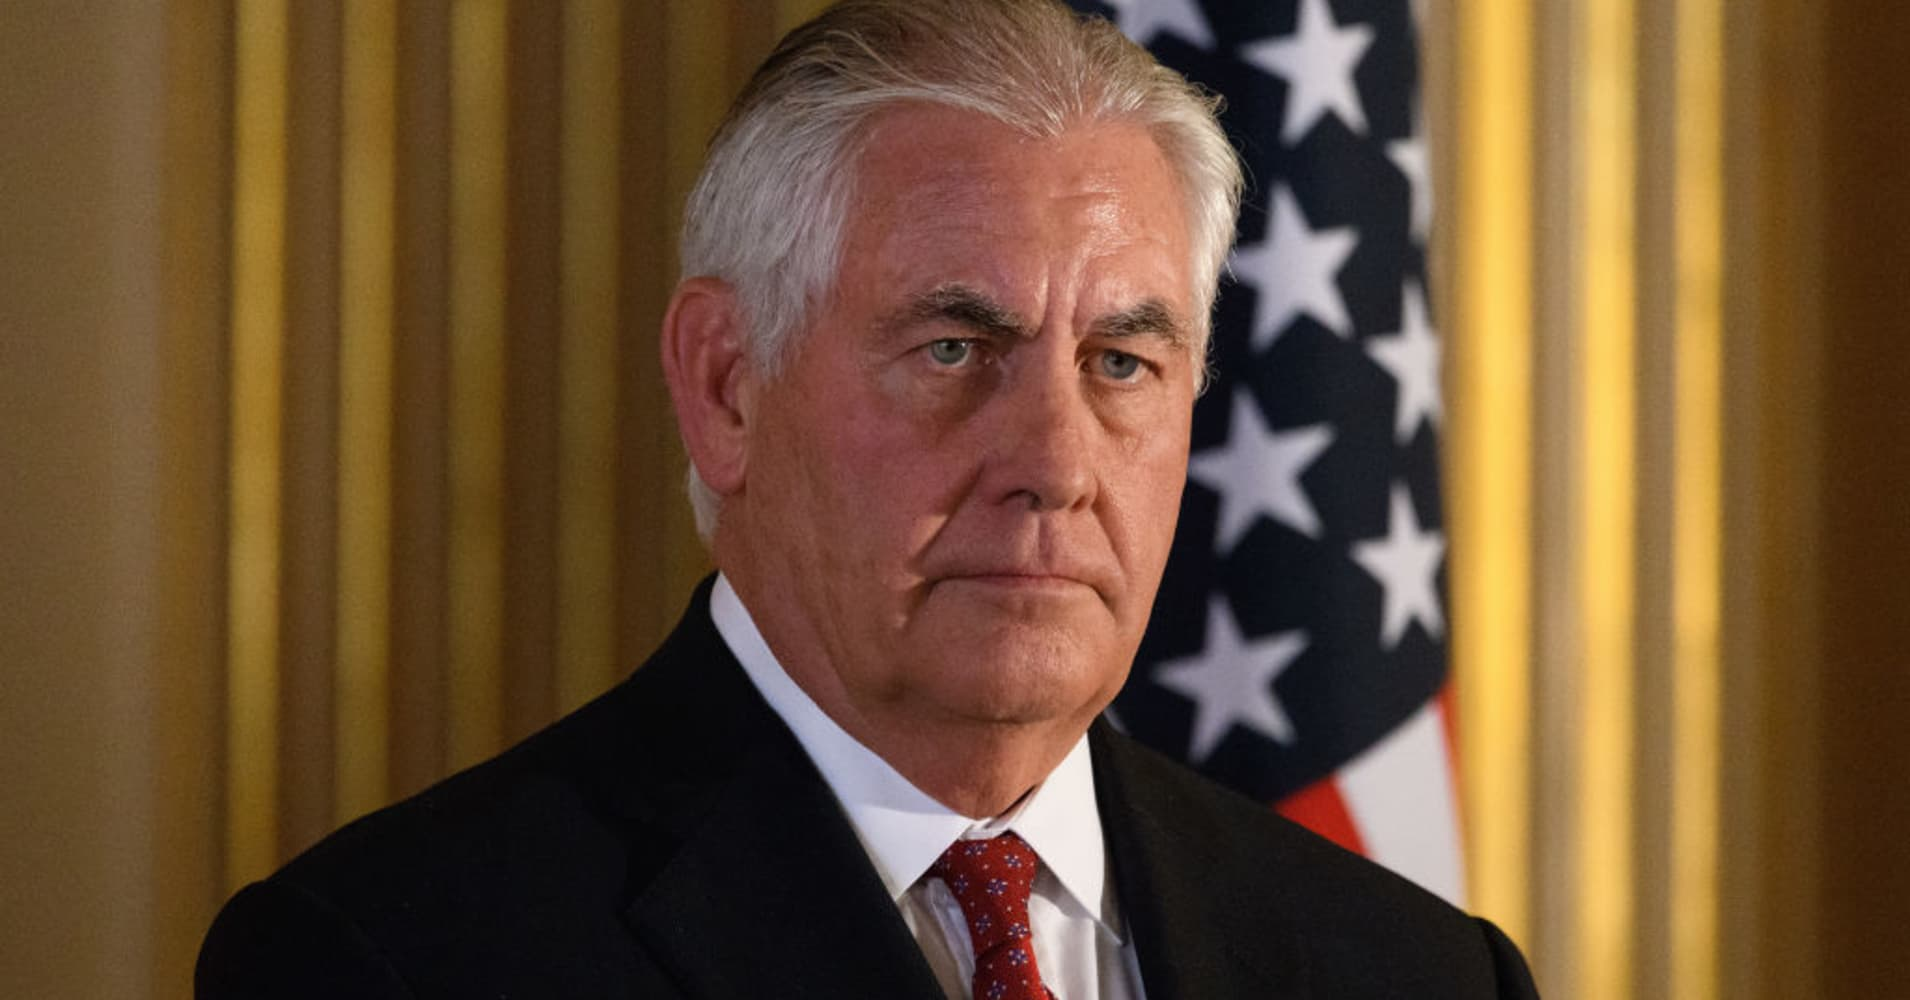 Secretary of State Rex Tillerson calls on 'all nations to take new measures' against North Korea